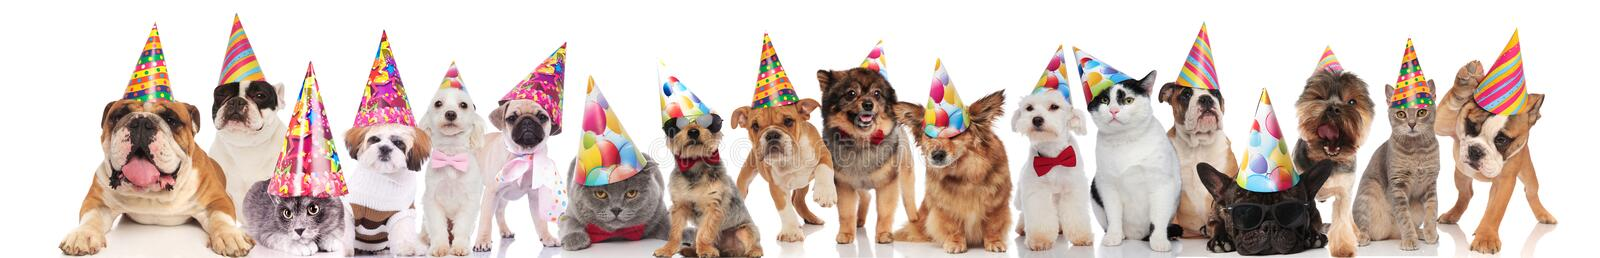 Large group of party domestic animals of different breeds royalty free stock images